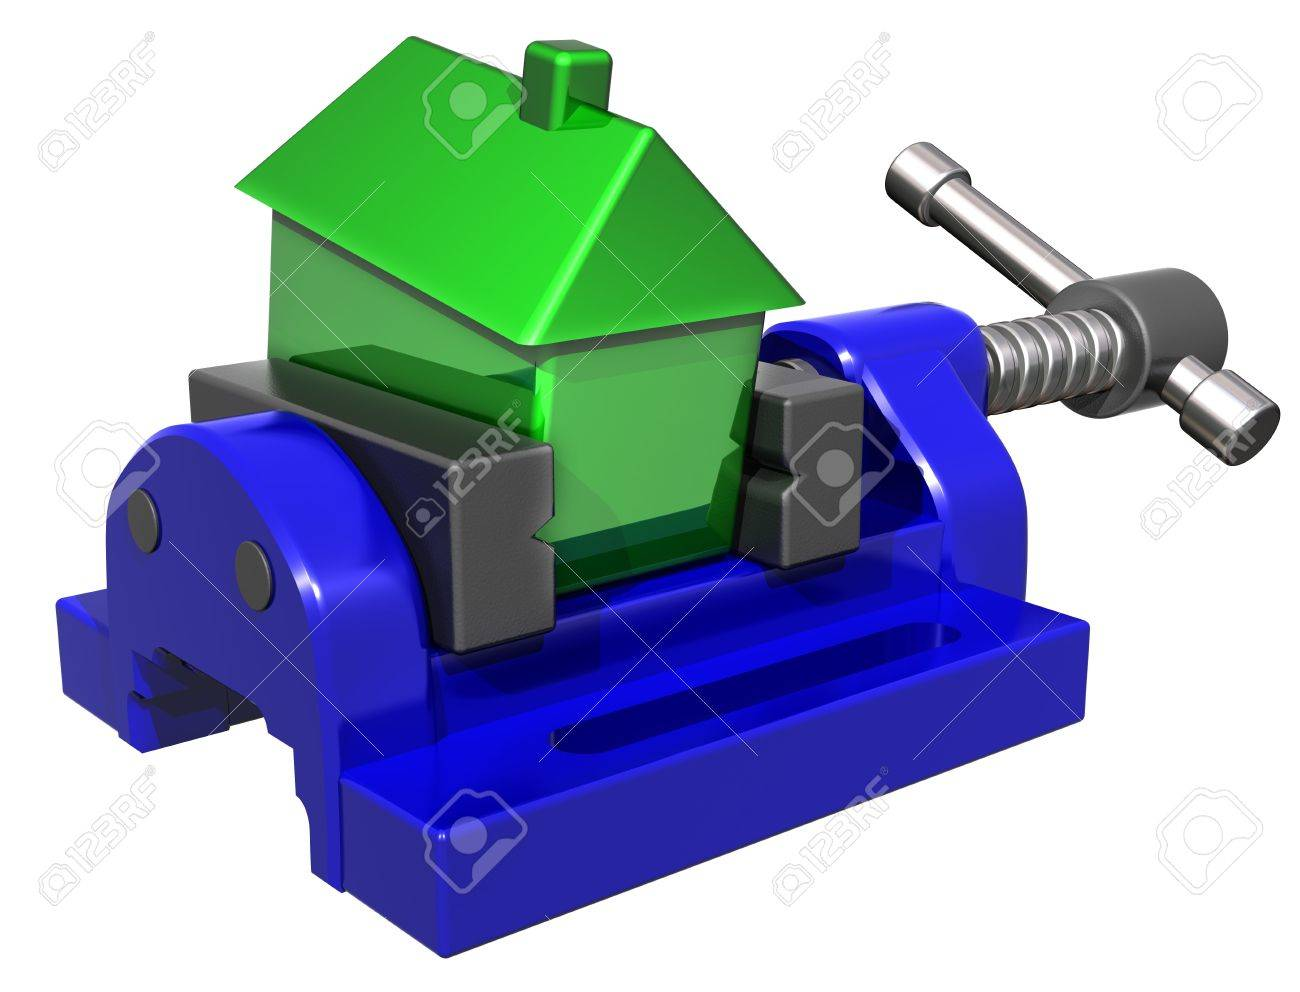 Isolated illustration of a house being squeezed in a vice Stock Illustration - 5377401